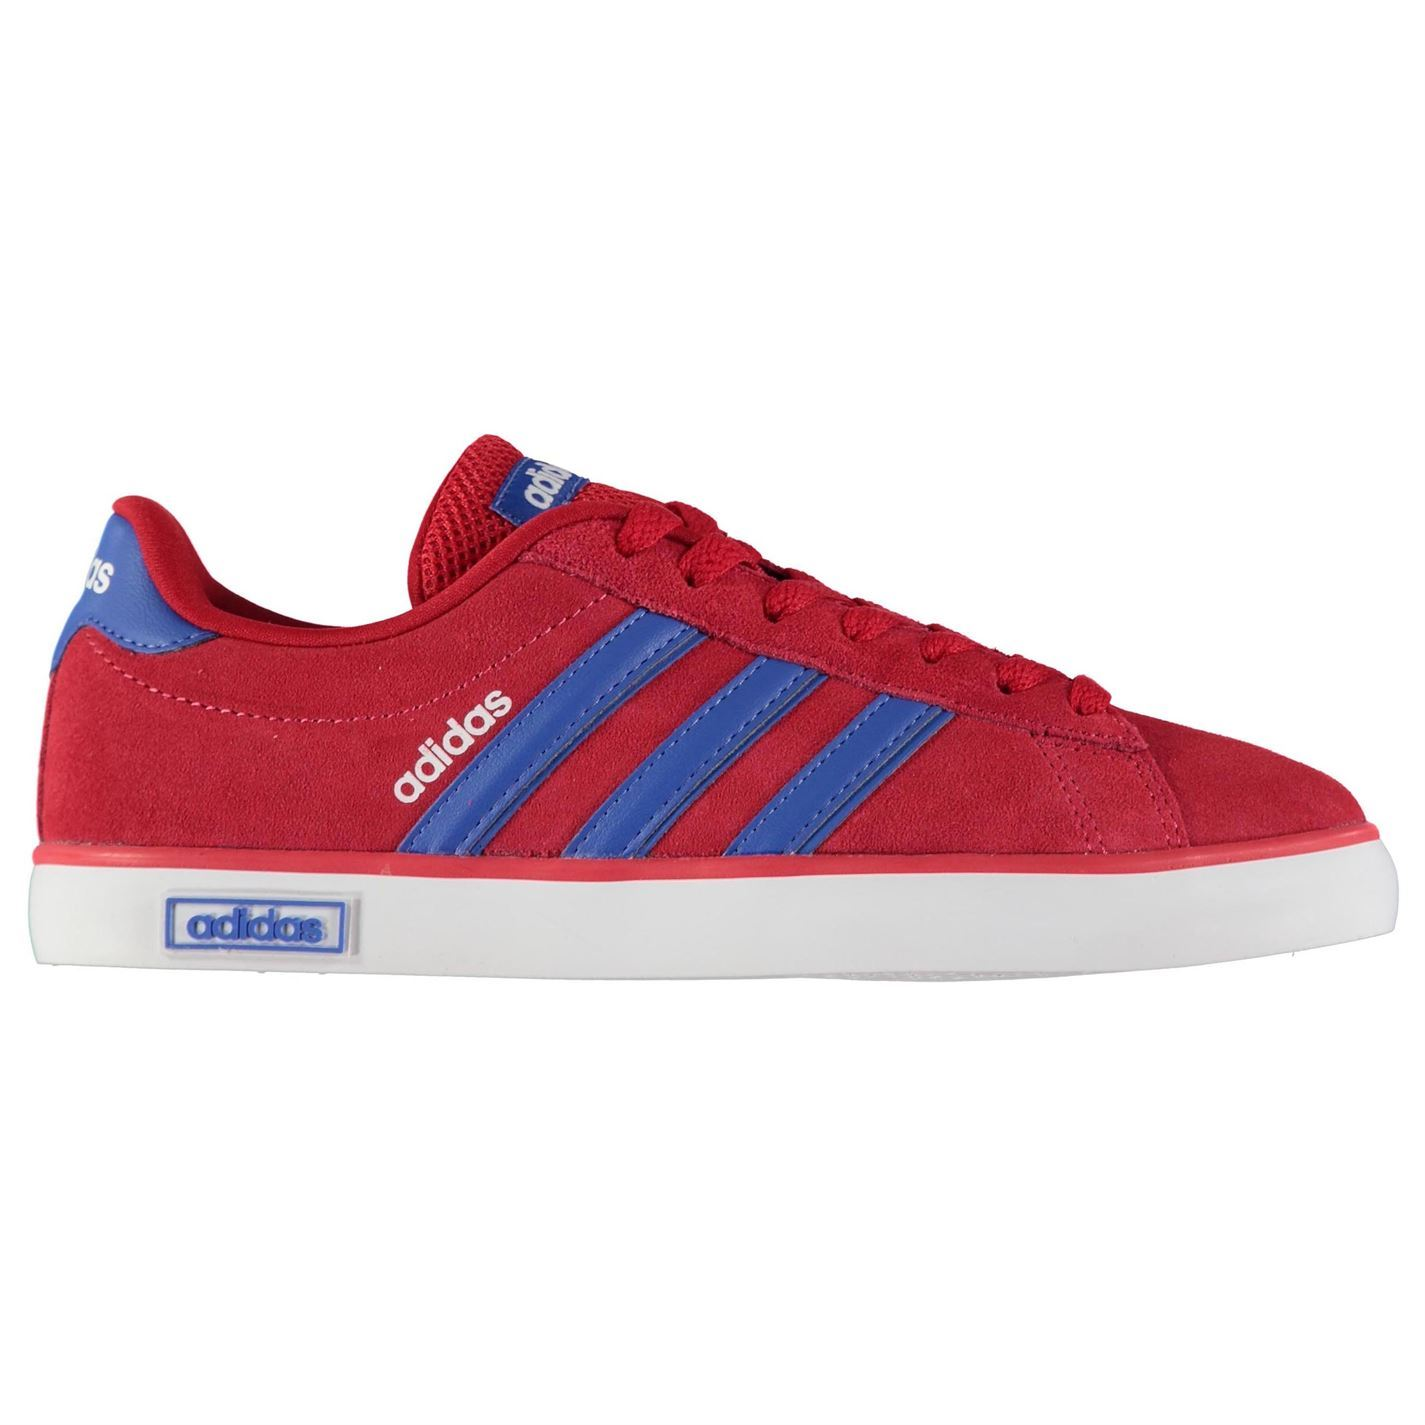 Adidas  Uomo Derby Suede Vulcanised Trainers Lace Up Suede Derby Fashion Casual Schuhes e6af39